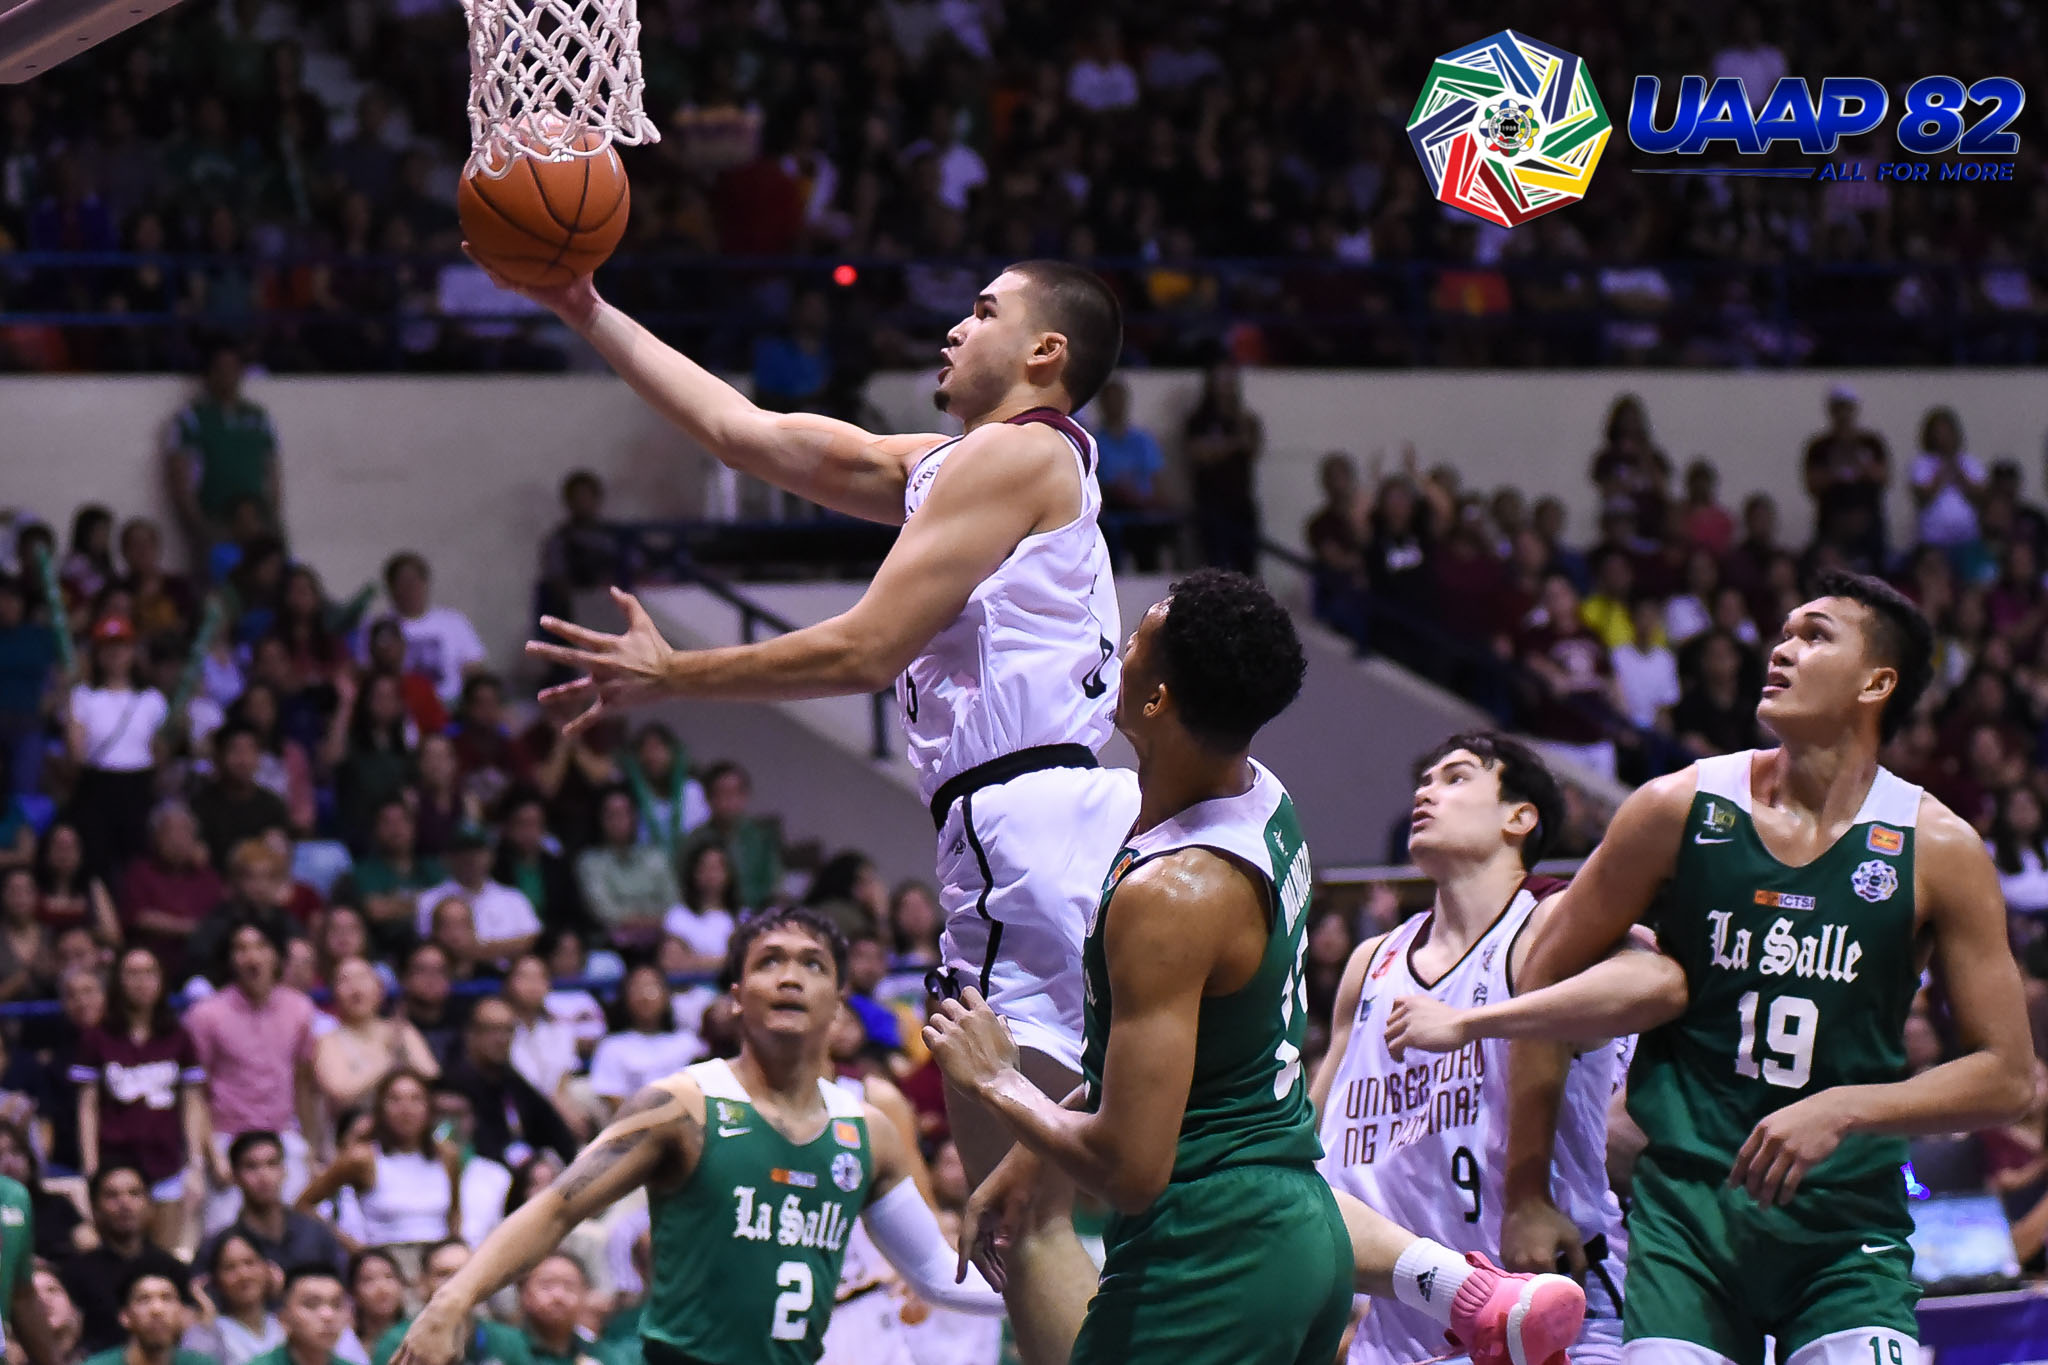 Tiebreaker Times UP captures playoff incentive, boots out La Salle Basketball DLSU News UAAP UP  UP Men's Basketball UAAP Season 82 Men's Basketball UAAP Season 82 Ricci Rivero Kobe Paras Jun Manzo Jamie Orme-Malonzo Jamie Orme Gian Nazario DLSU Men's Basketball Bright Akhuetie Bo Perasol Aljun Melecio